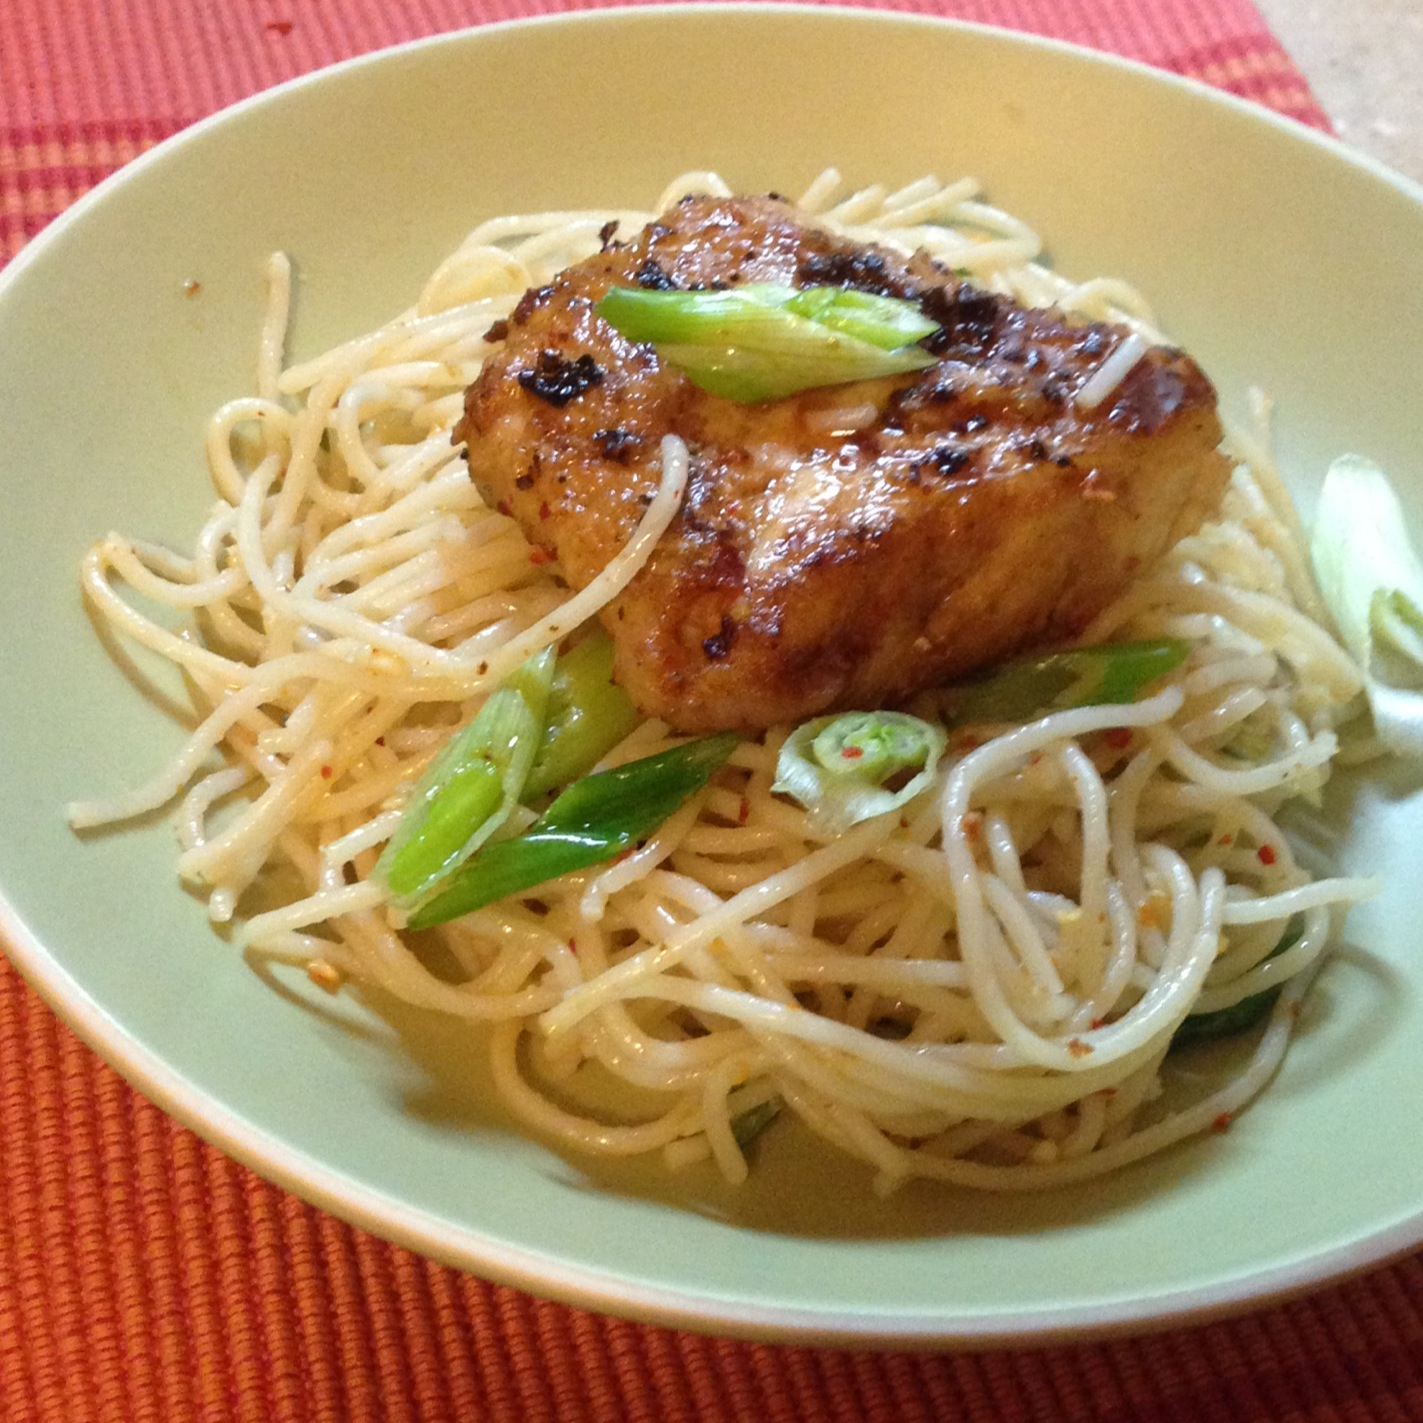 Pan fried Fish with Chili Garlic Noodles Recipe